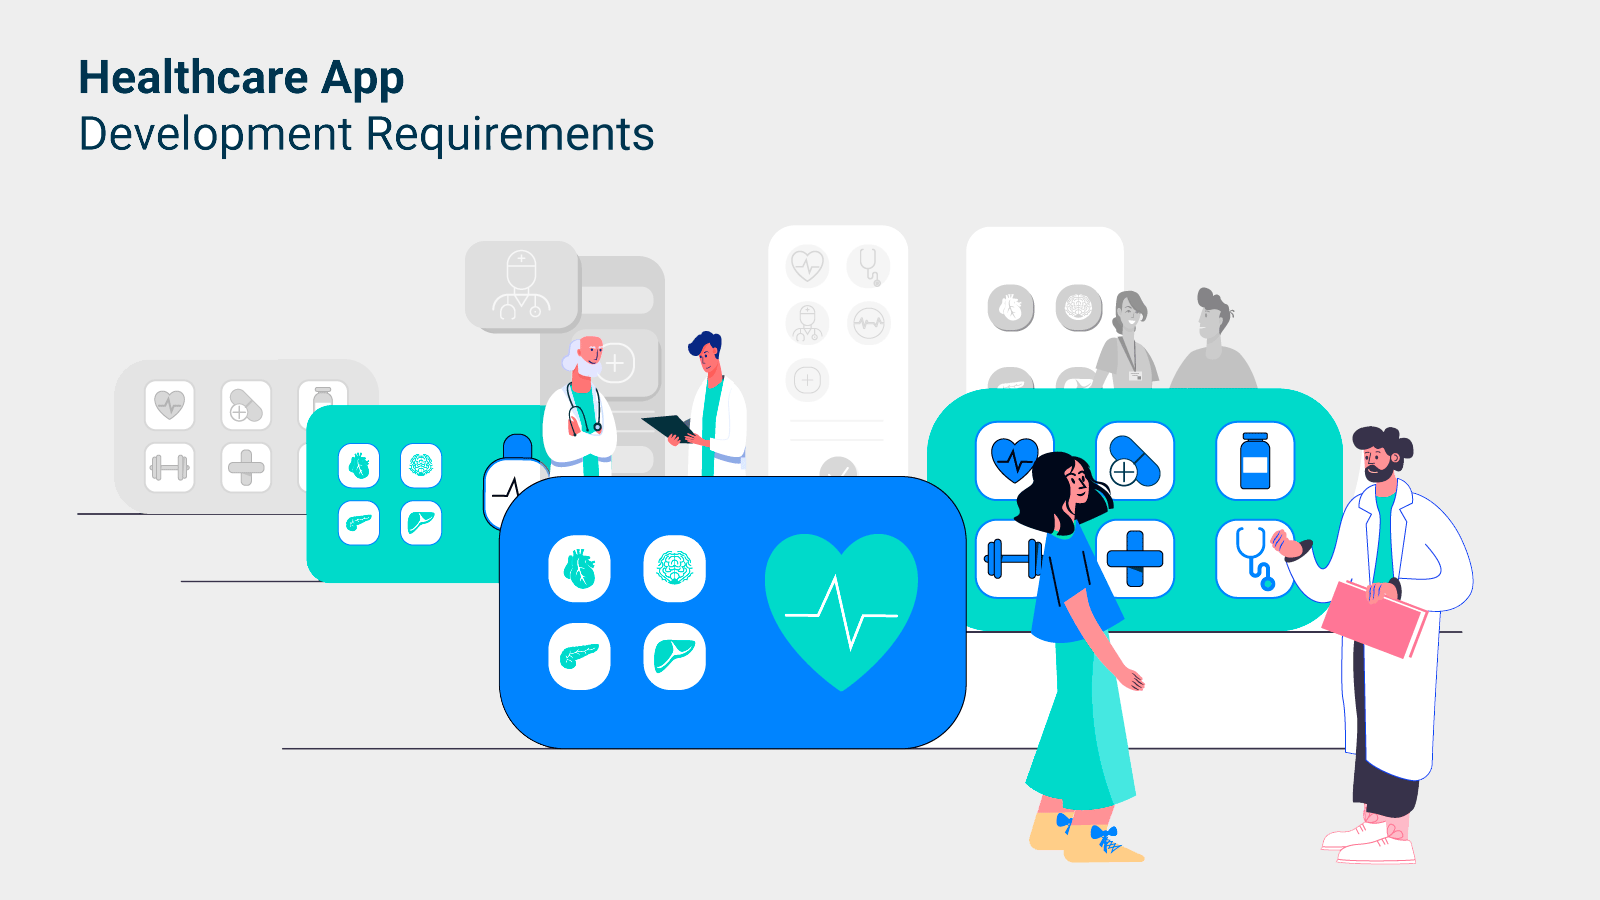 Functionality and standards used in healthcare mobile app development